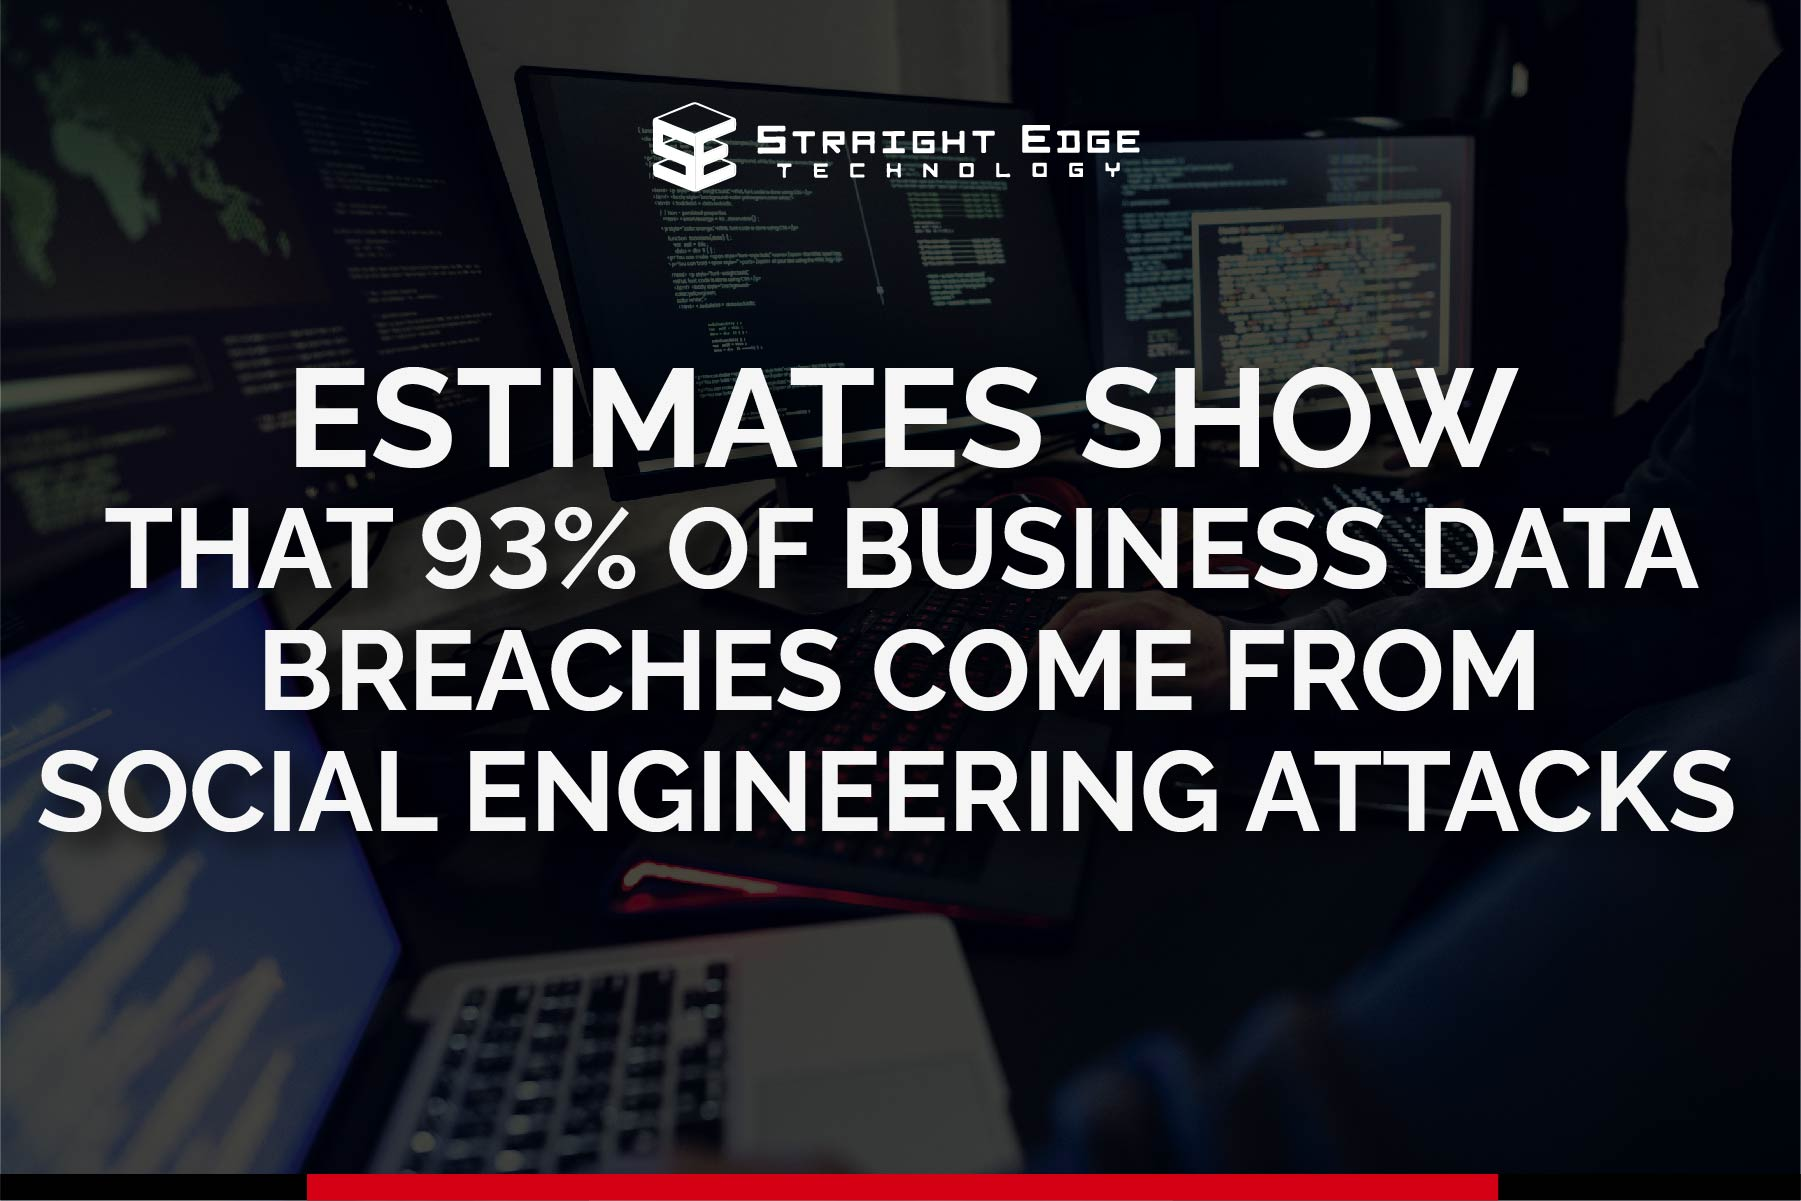 estimates show 93% of business data breaches come from social engineering attacks